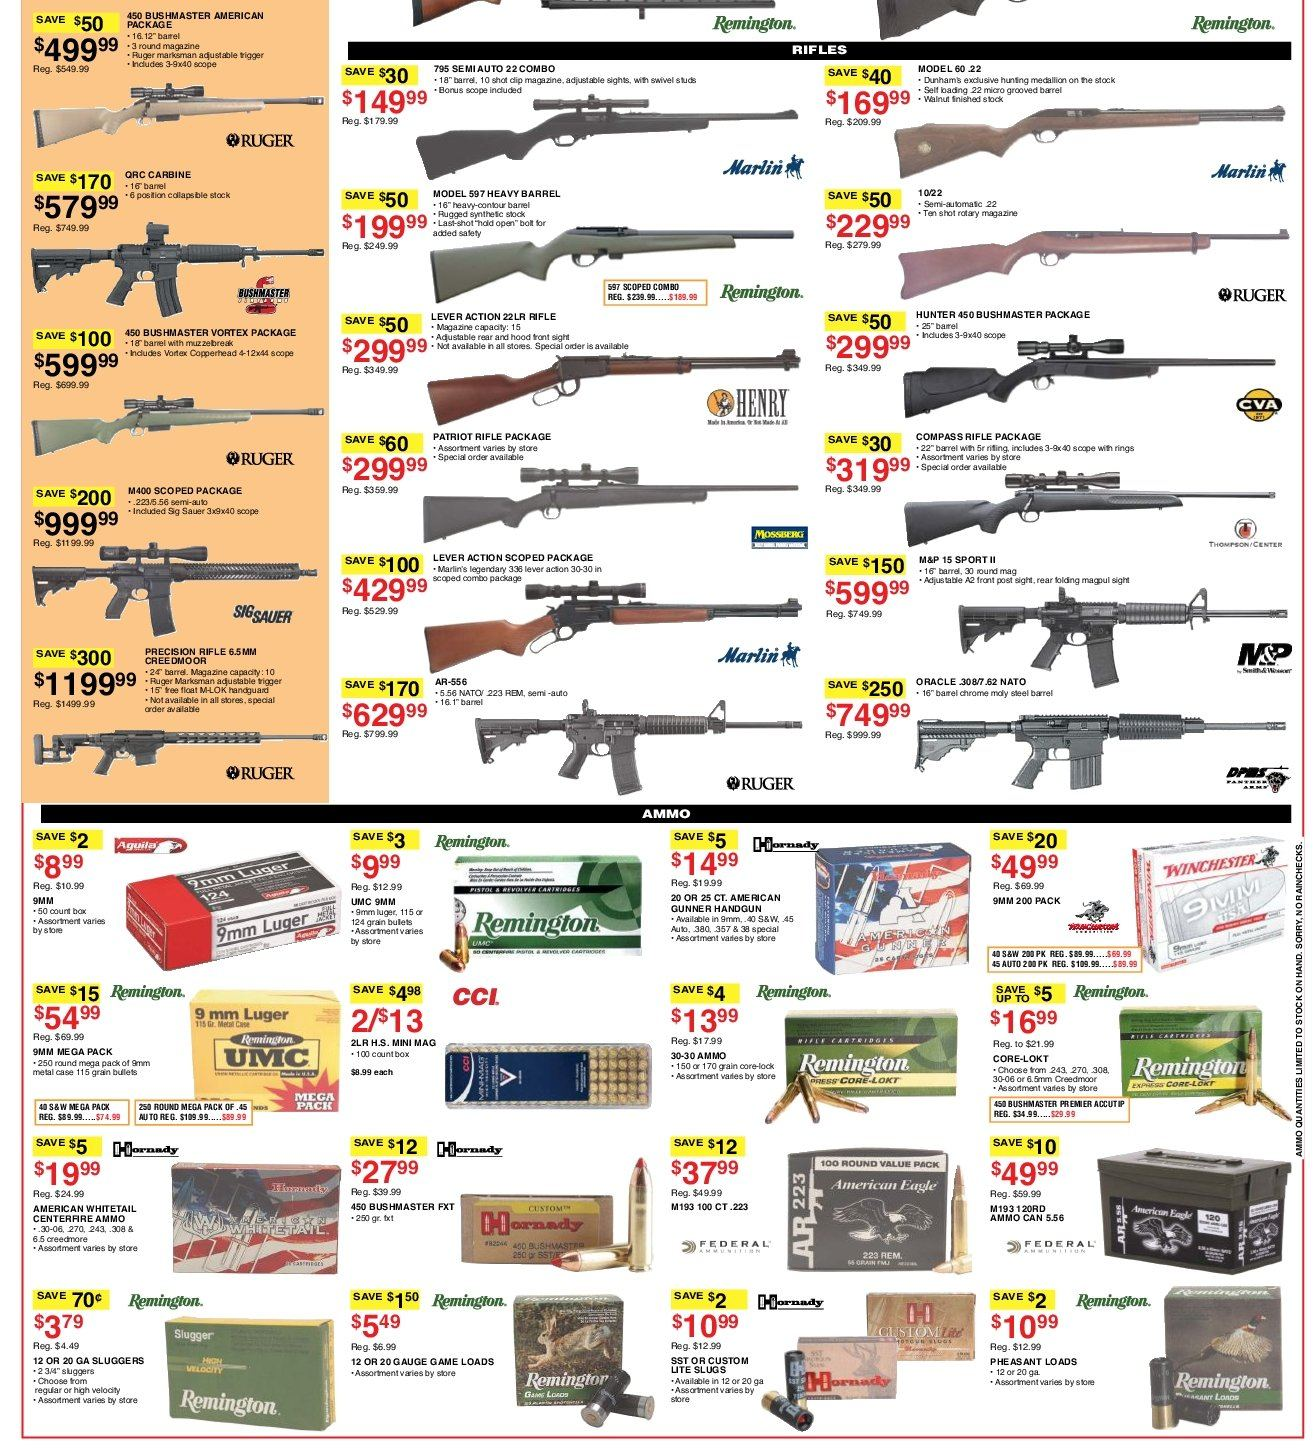 Dunham's Sports Flyer - 09.08.2018 - 09.13.2018 - Sales products - 9mm, carbine, luger, marlin, remington, rifle, ring, ruger, studs, tree, vortex, whitetail, handgun, hoodie. Page 8.